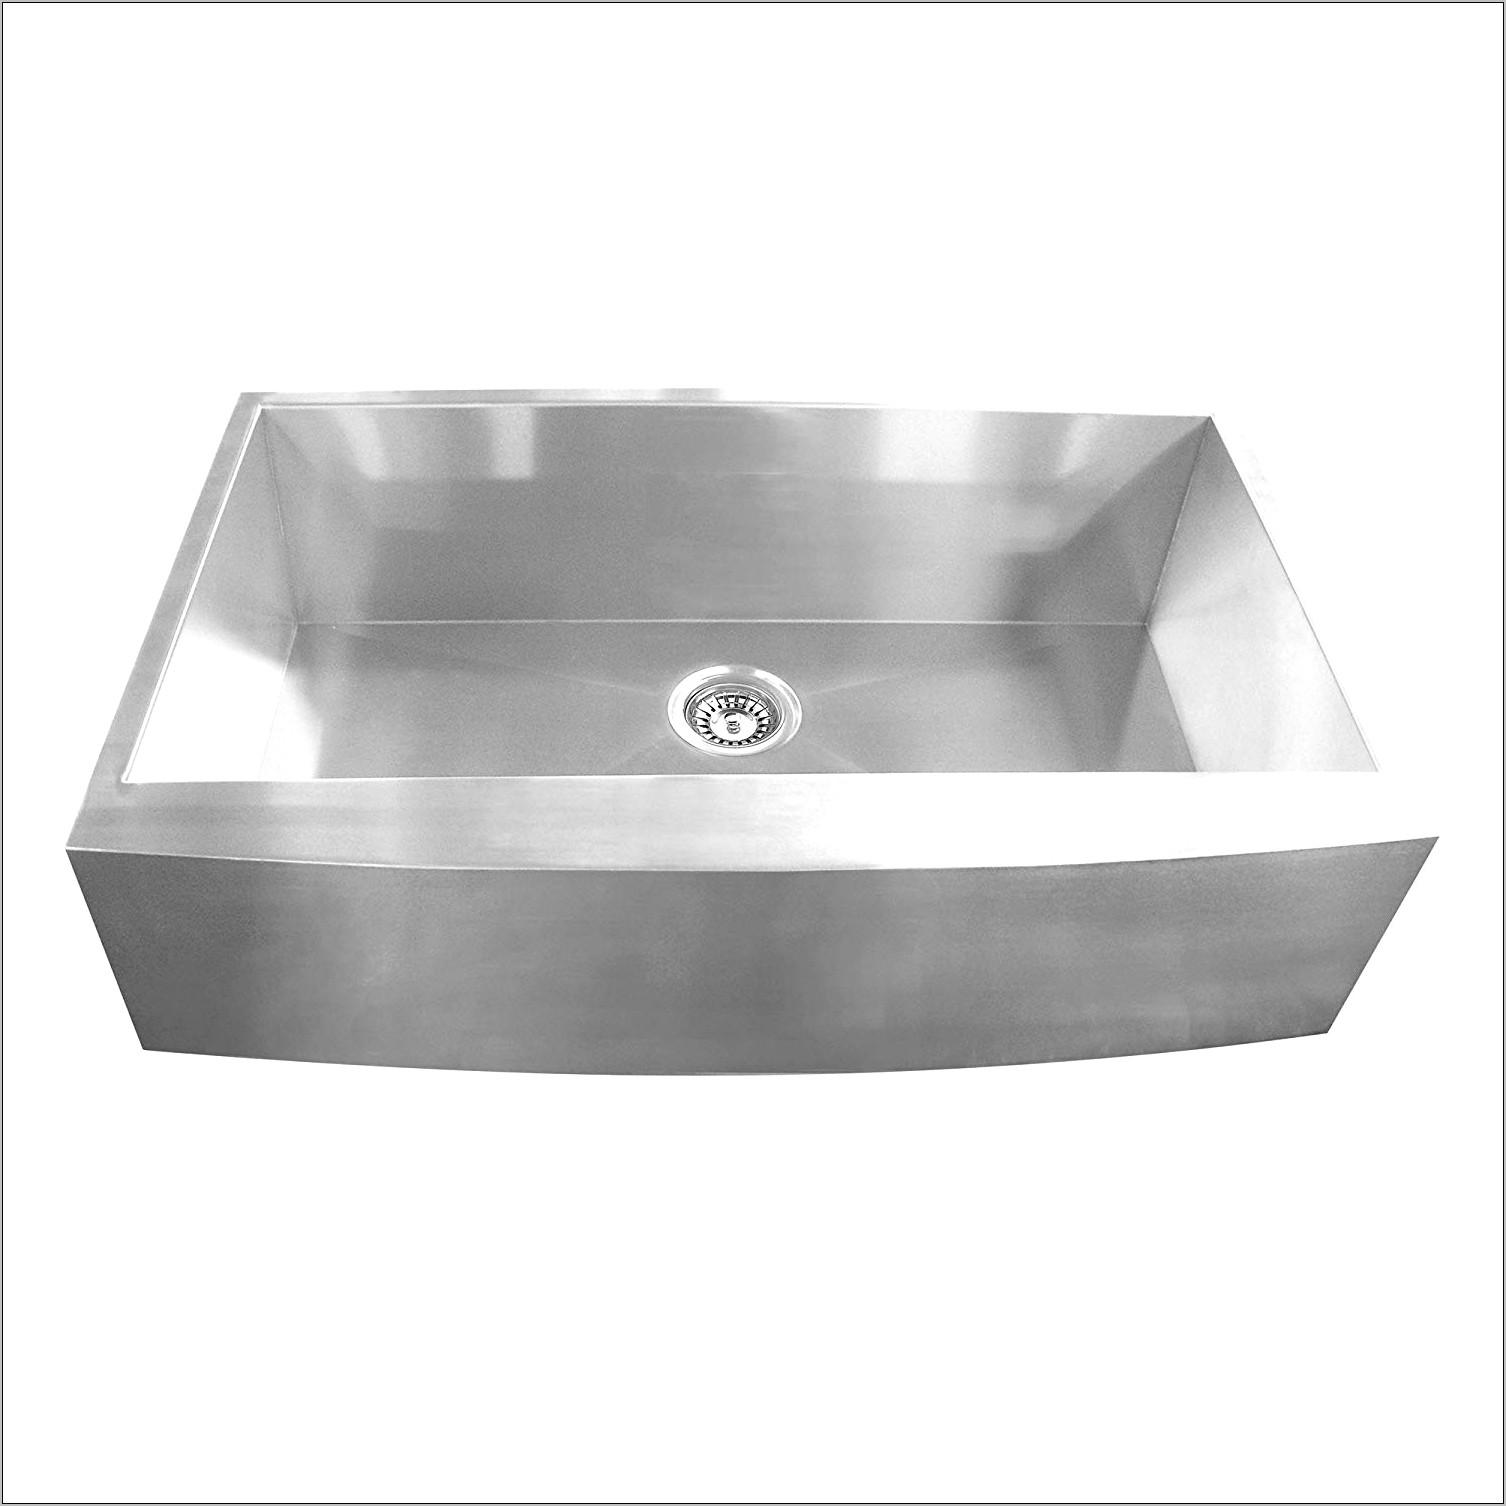 Yosemite Home Decor Kitchen Sink